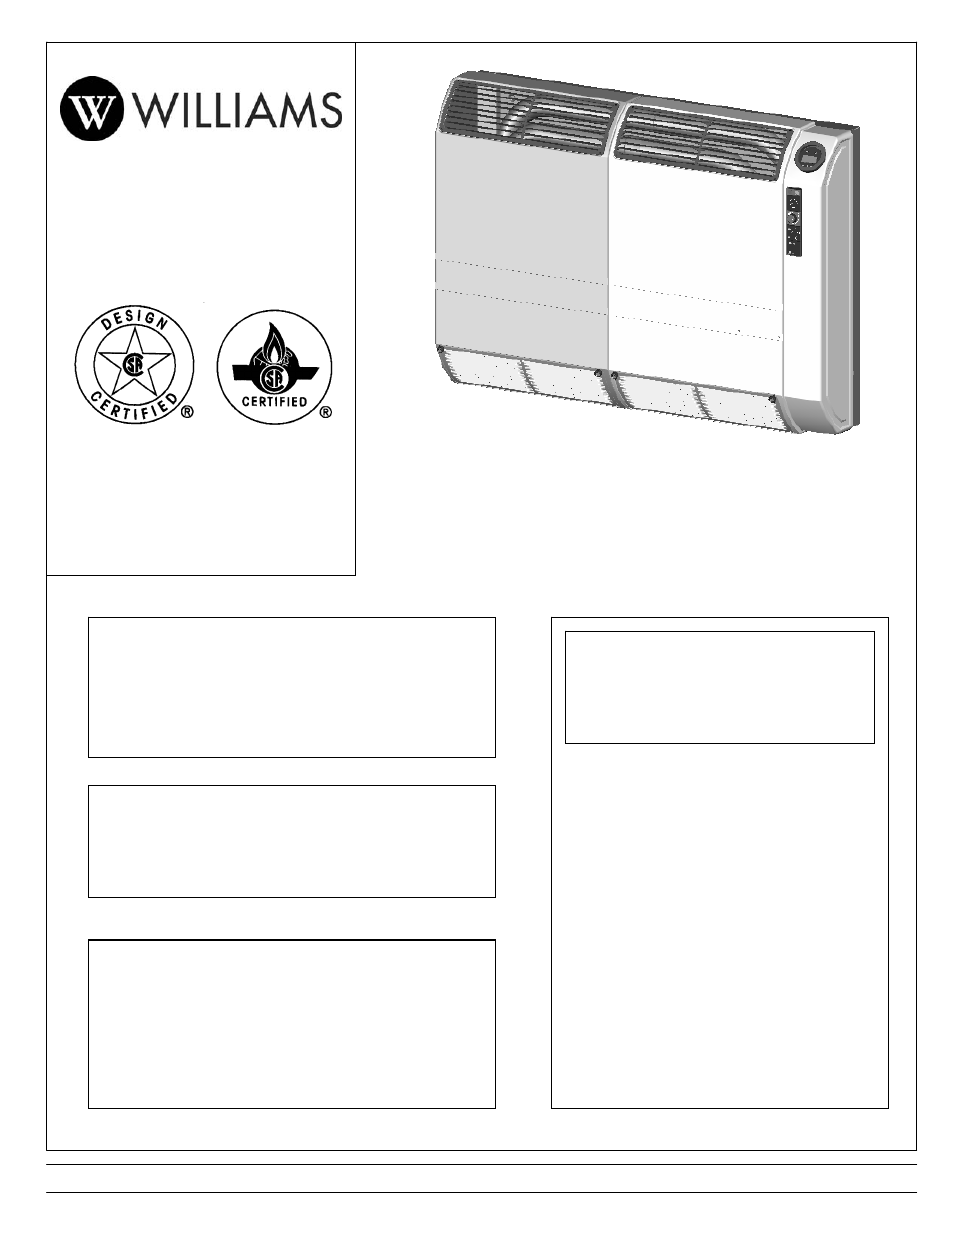 Williams 2903512 user manual 24 pages also for 2903511 publicscrutiny Choice Image